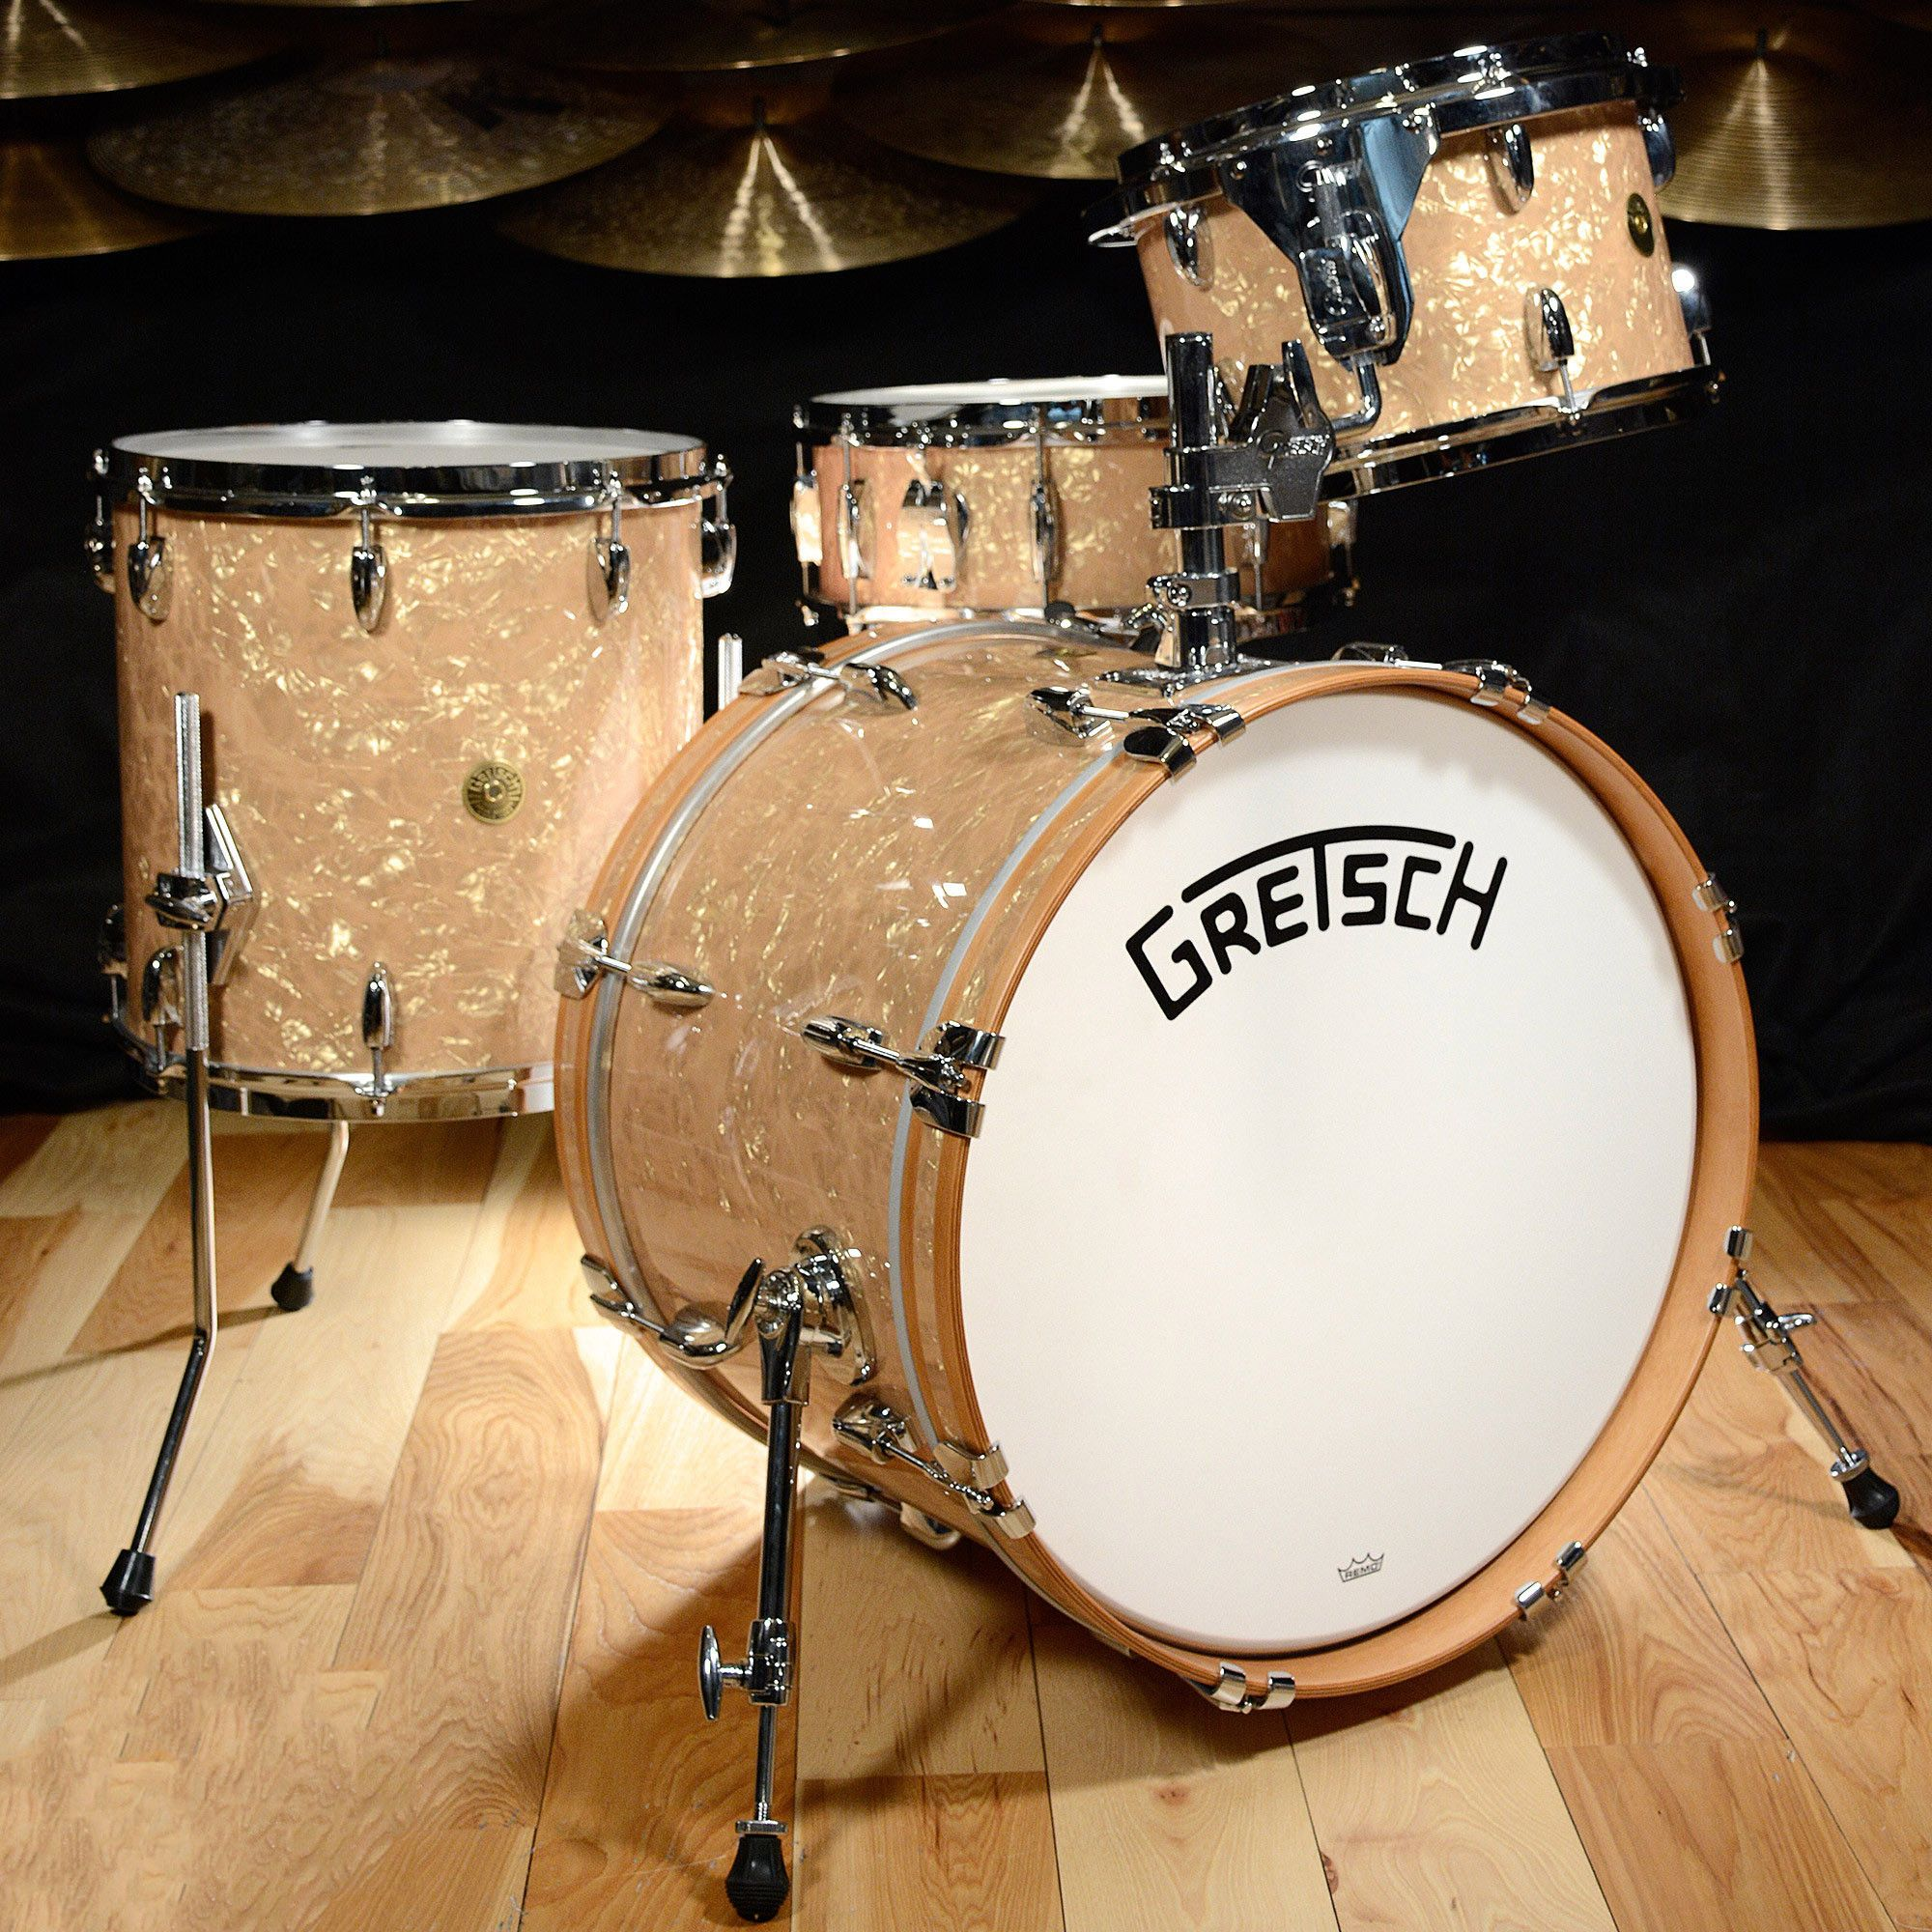 Find This Pin And More On Magnificent Drums And Drummers